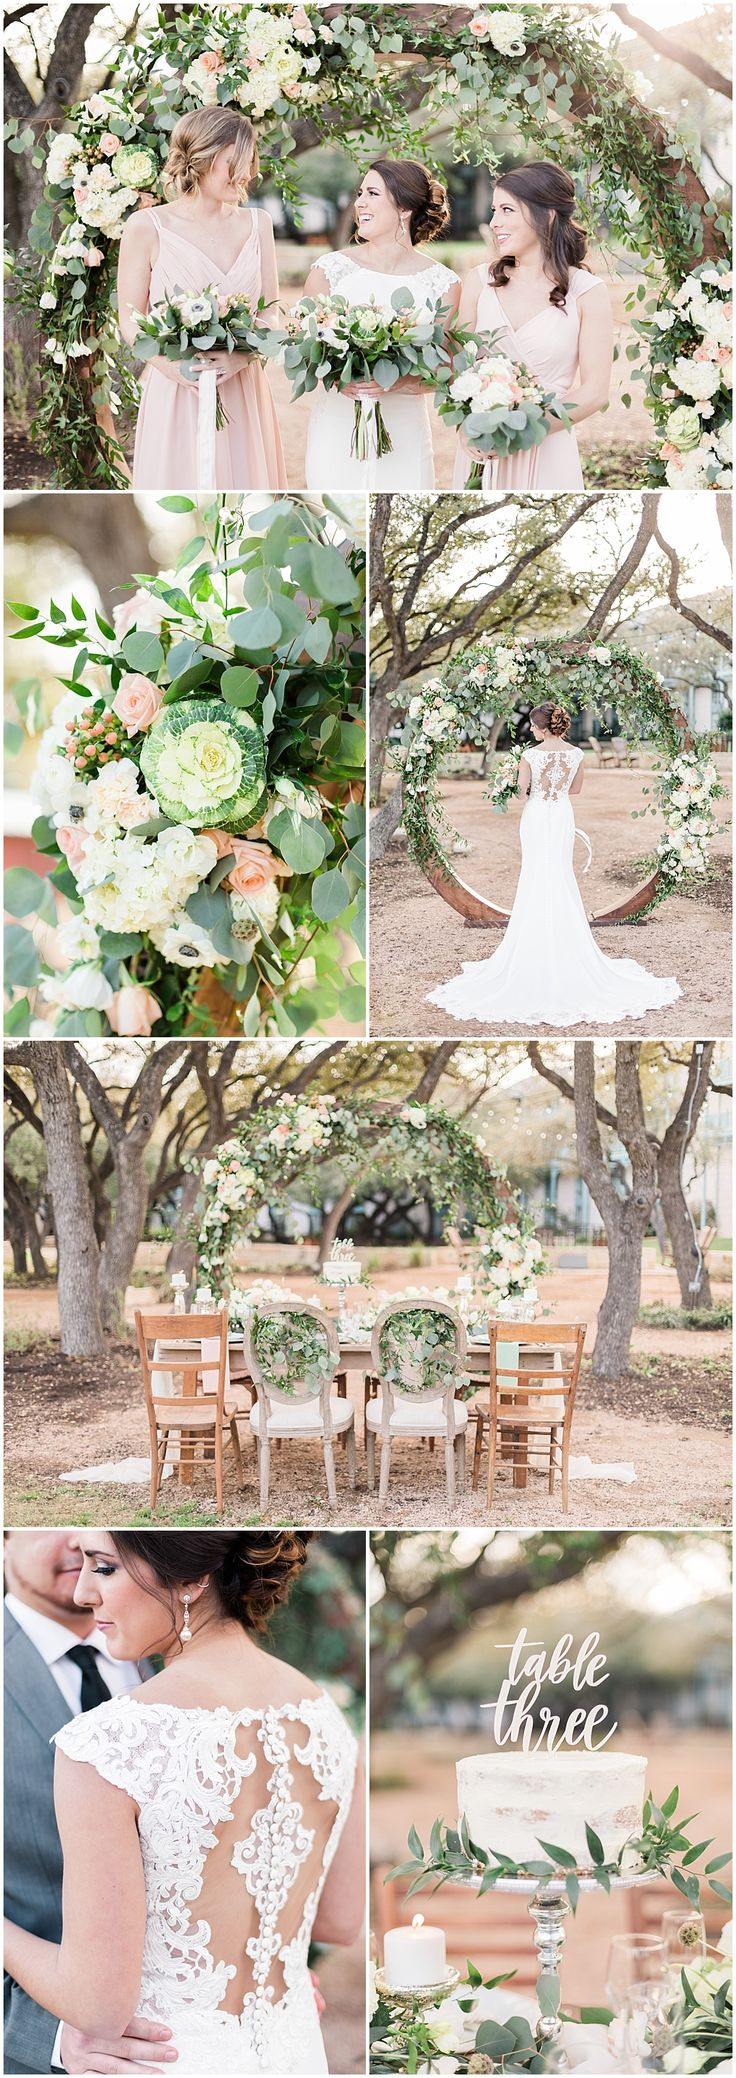 Floral Circle Arch | Blush and Grey Garden Party organic Wedding inspiration Featuring a Floral Circle Arch at Hyatt Regency Hill Country Resort by Allison Jeffers Wedding Photography 0005